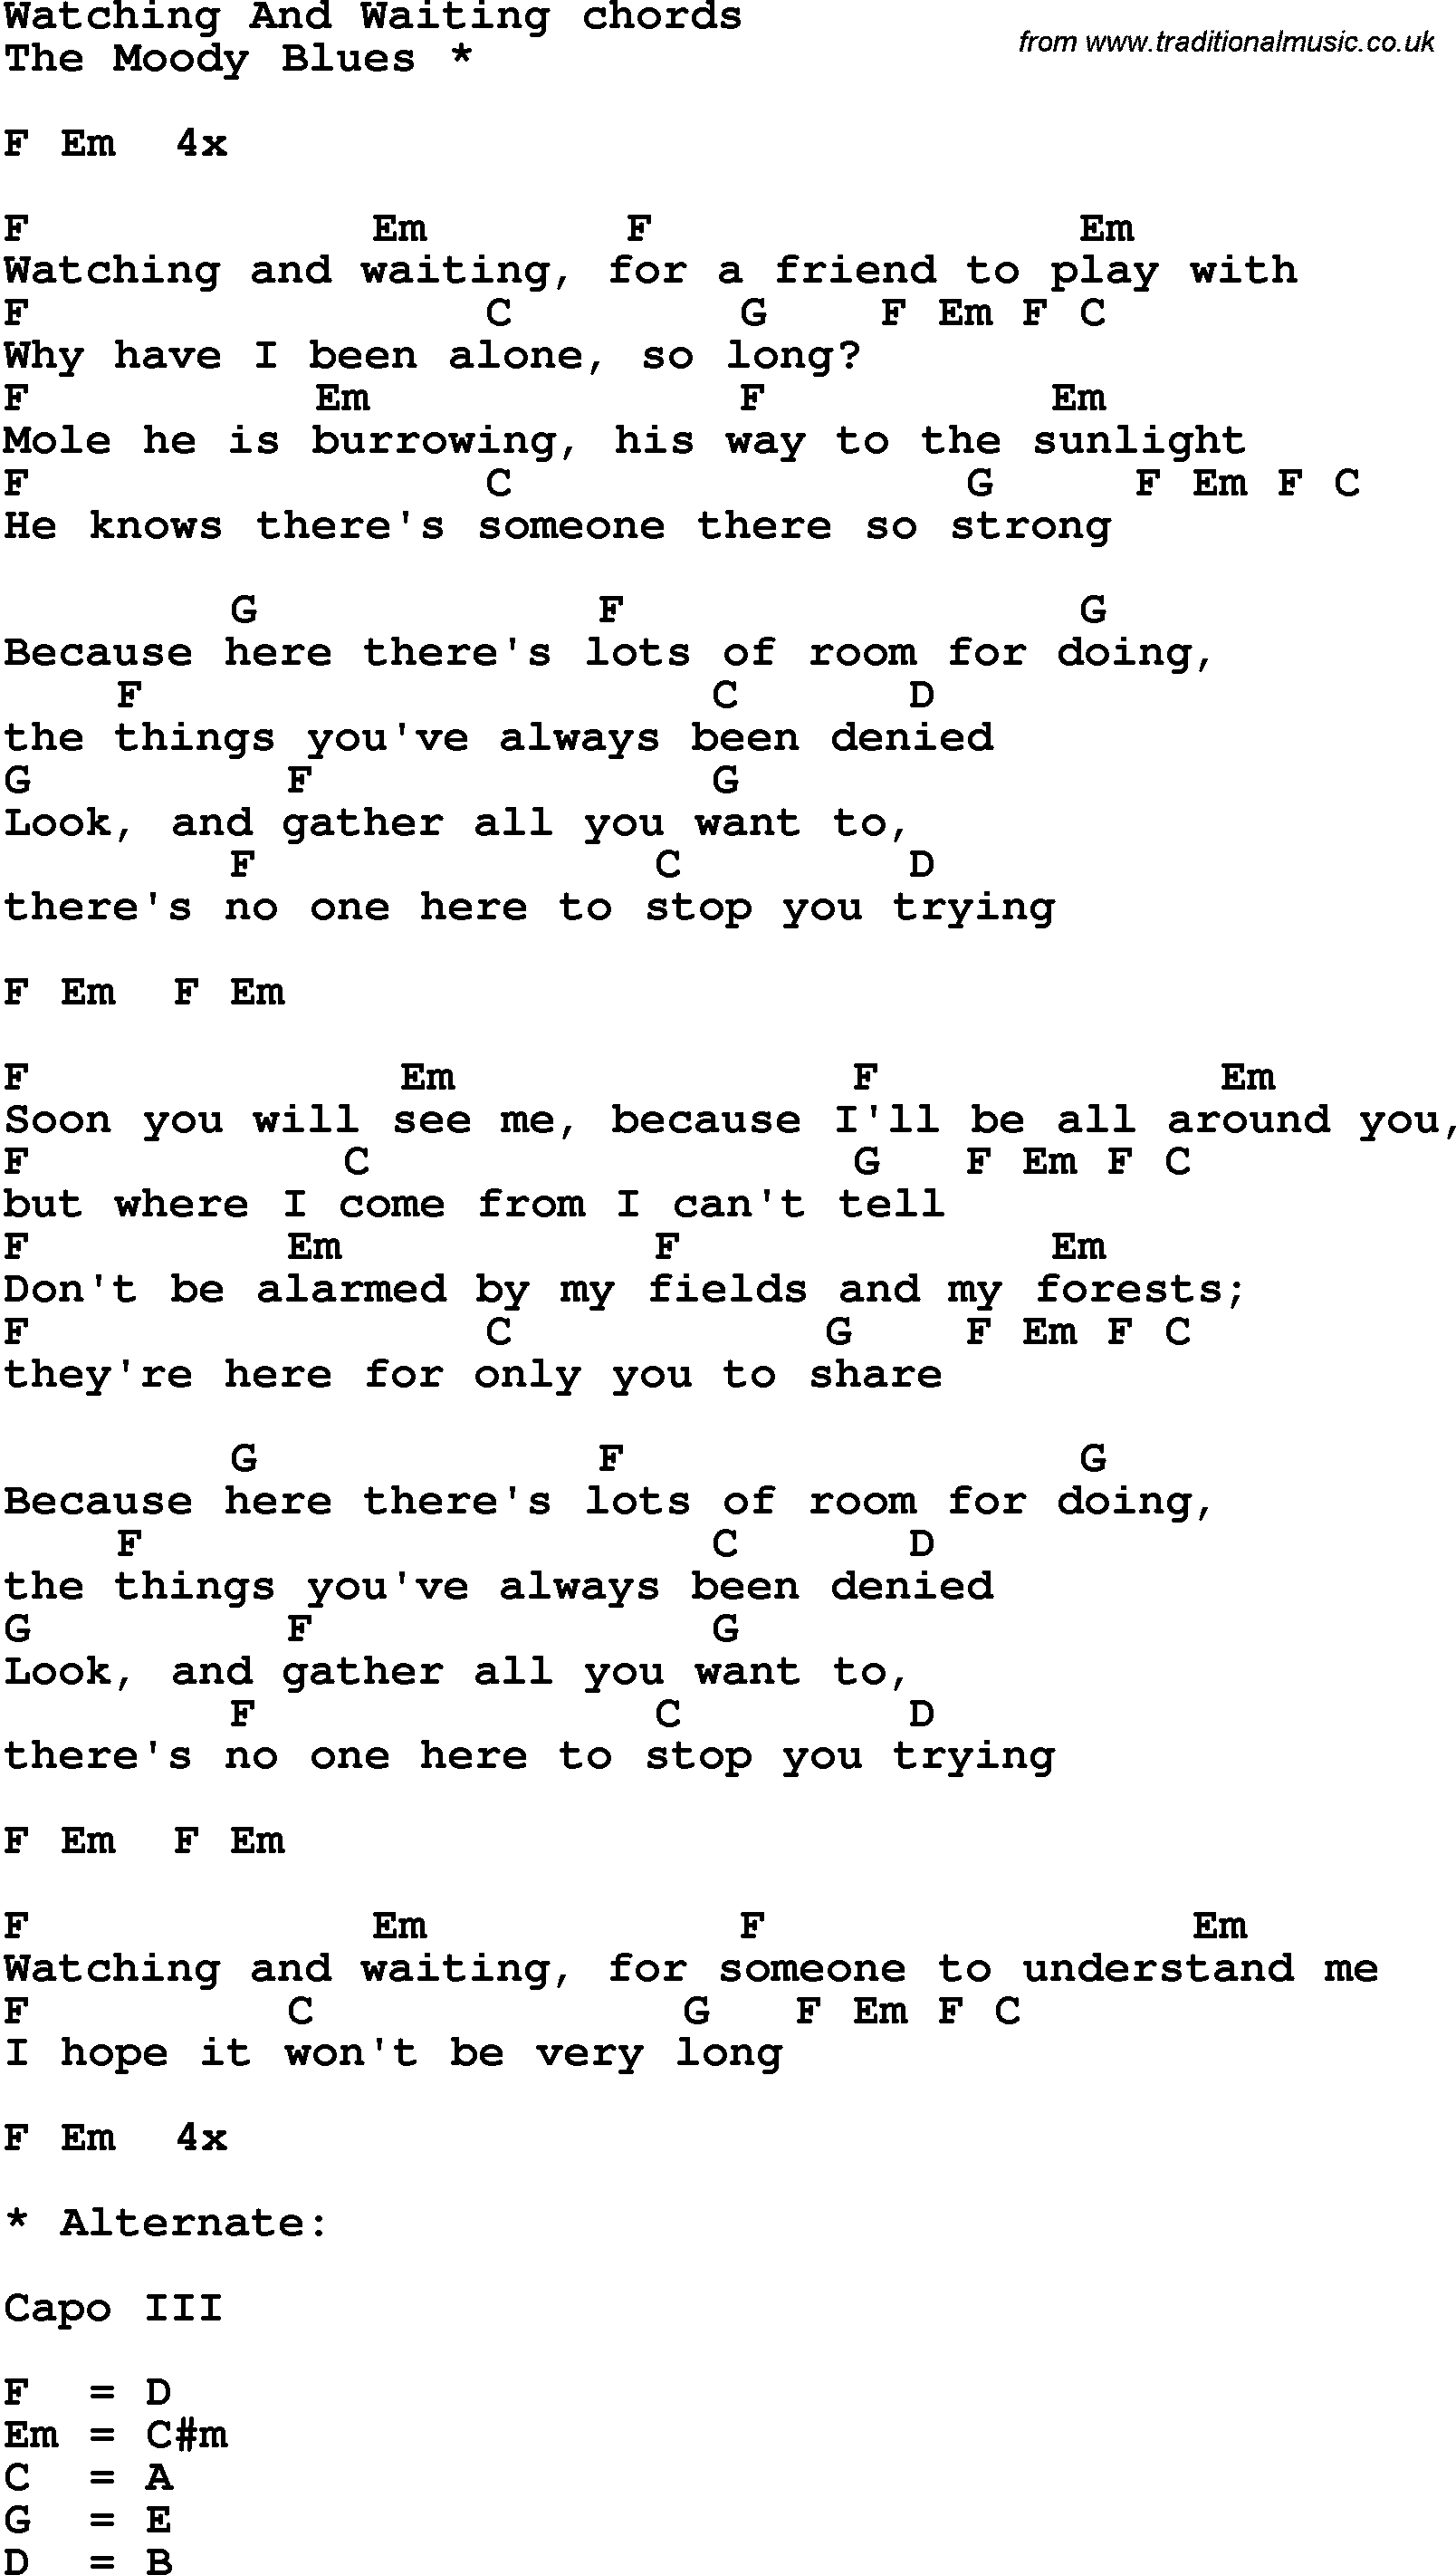 Song Lyrics With Guitar Chords For Watching And Waiting